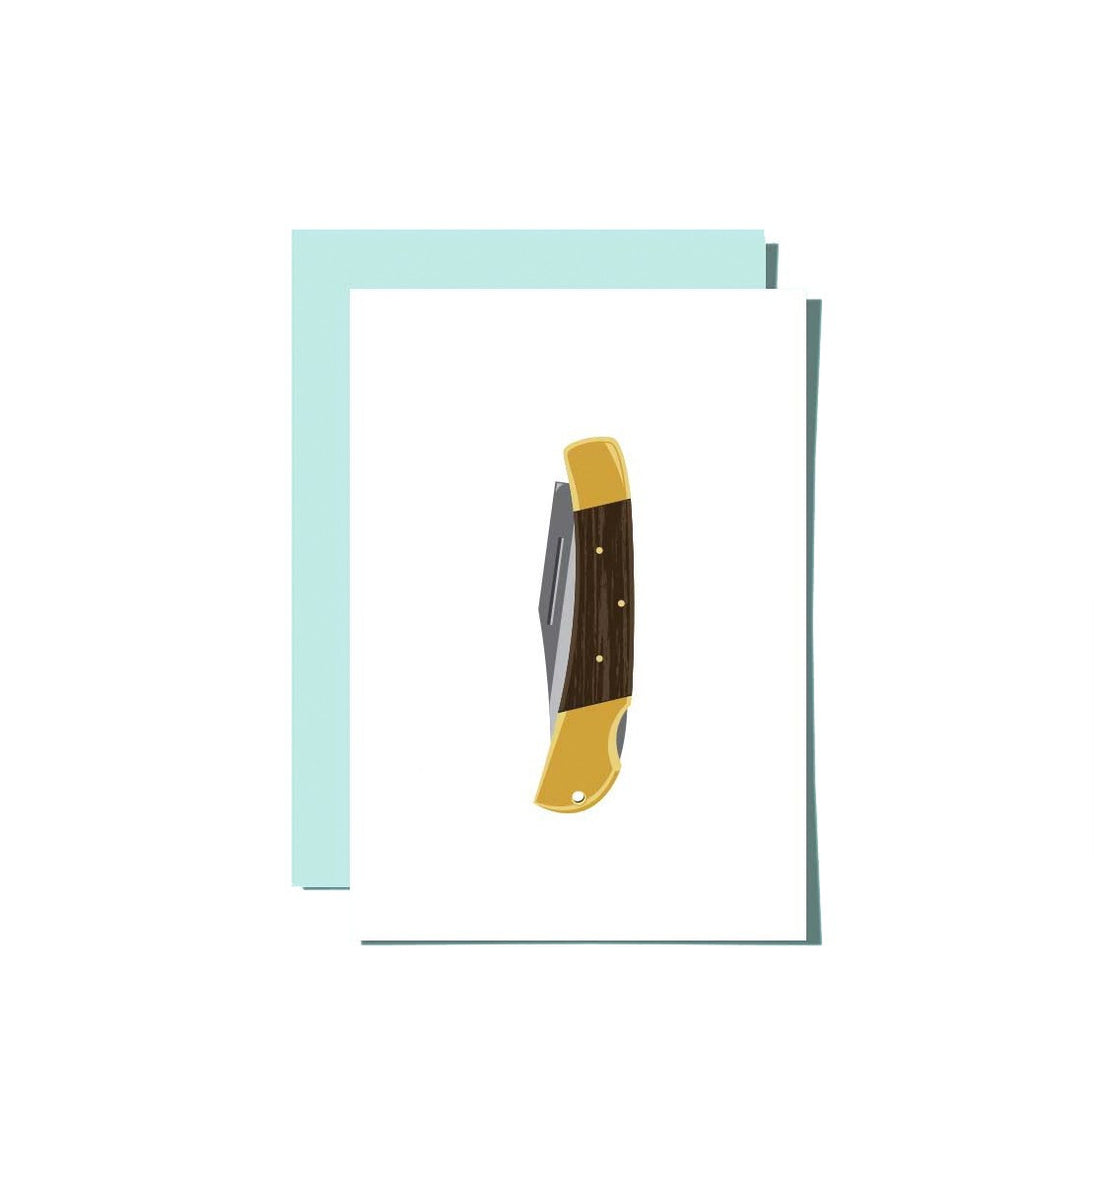 Roo Kee Roo - Pocket Knife Card - Art - Iron and Resin